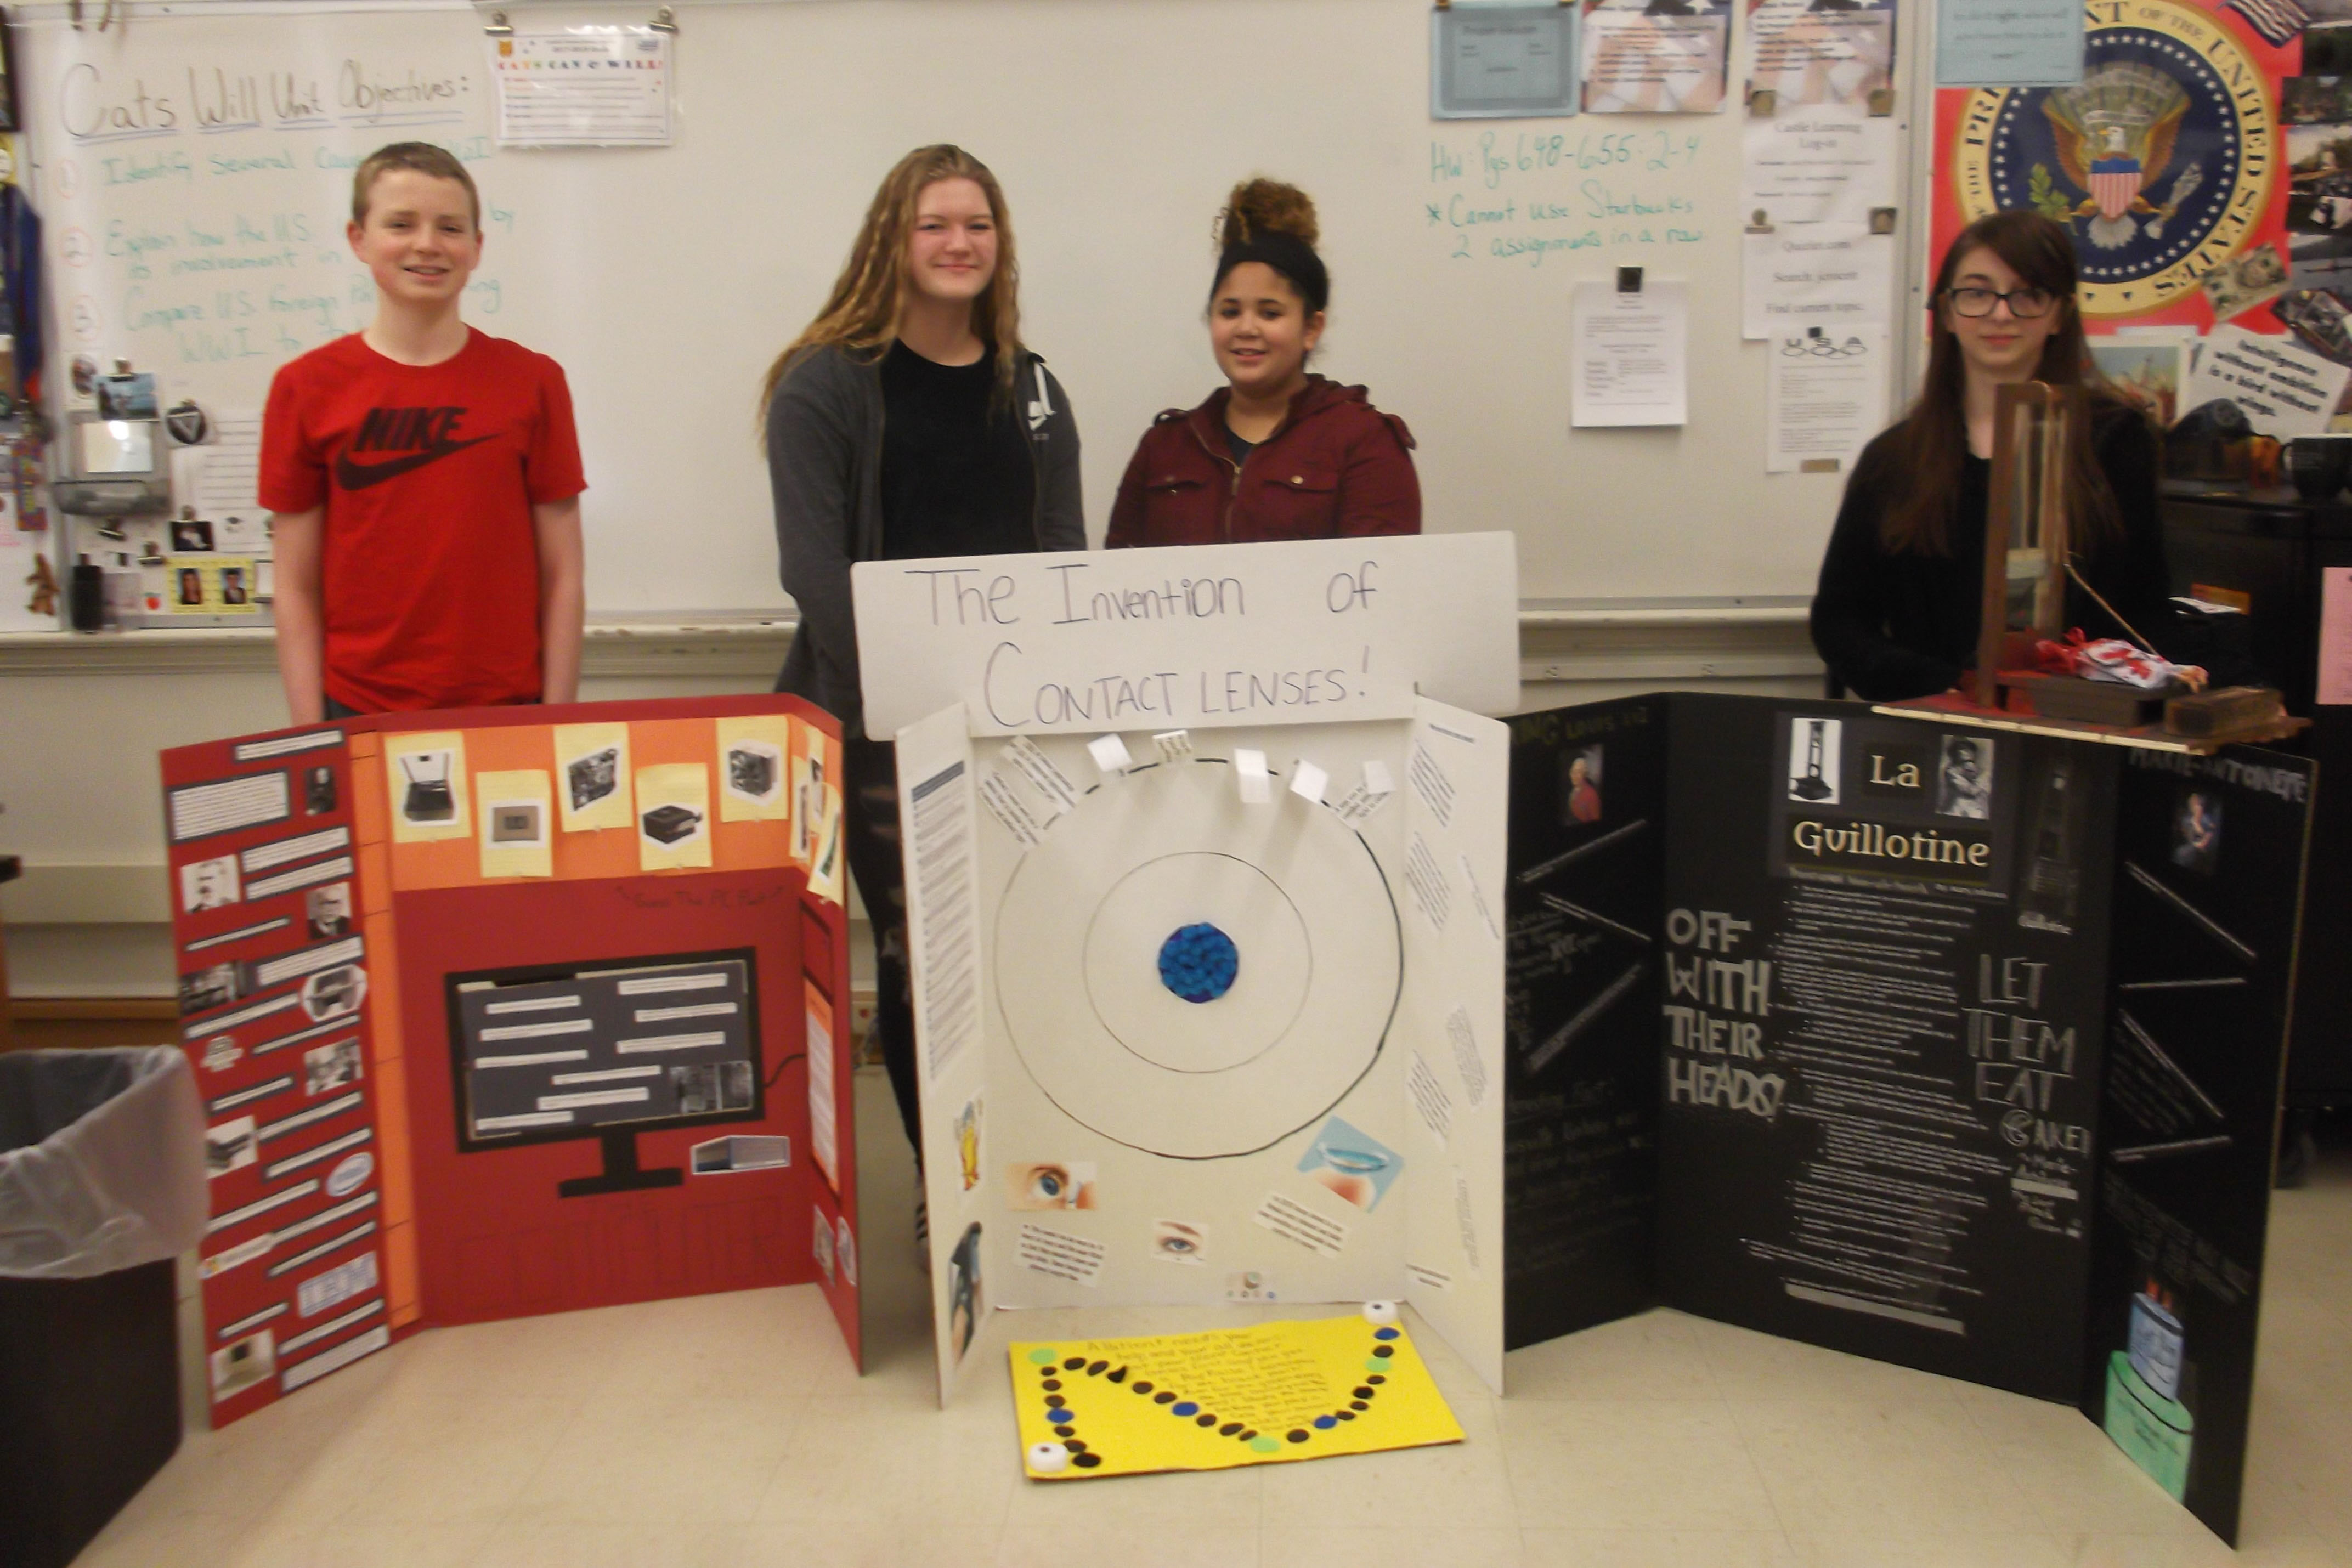 Pictured from Left to Right: Nate Riordon, Hannah Konsul, Alivia Westbrooke and Mary Johnson.